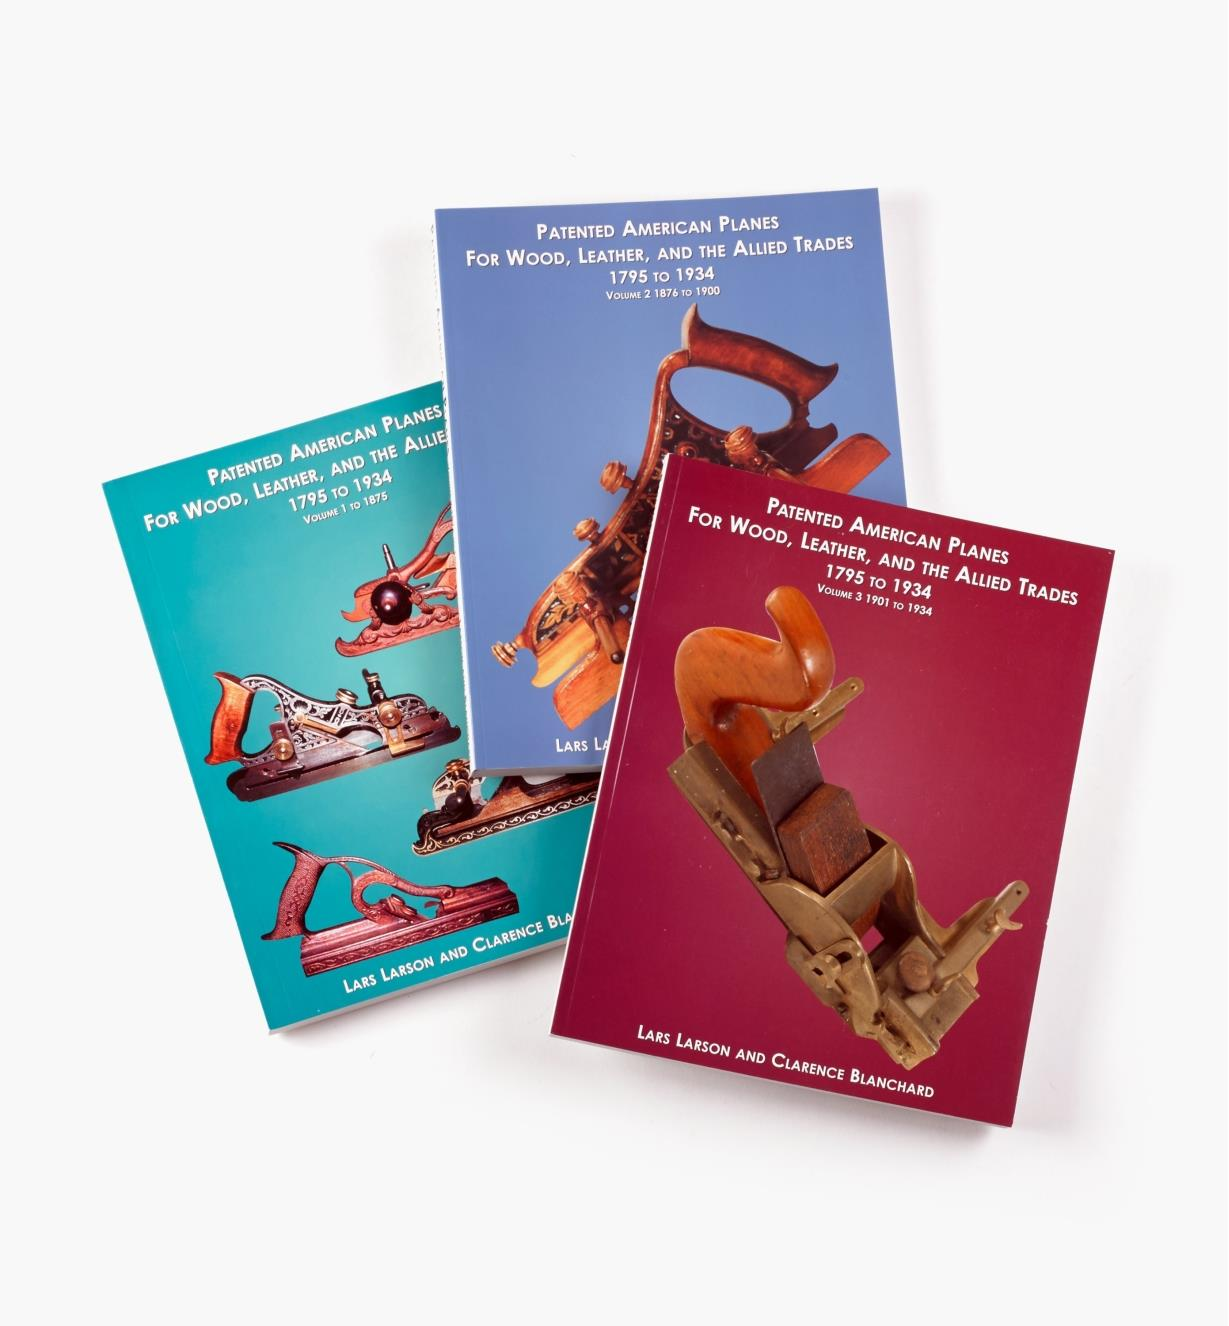 99W9020 - Patented American Planes for Wood, Leather and the Allied Trades, 3-Volume Set